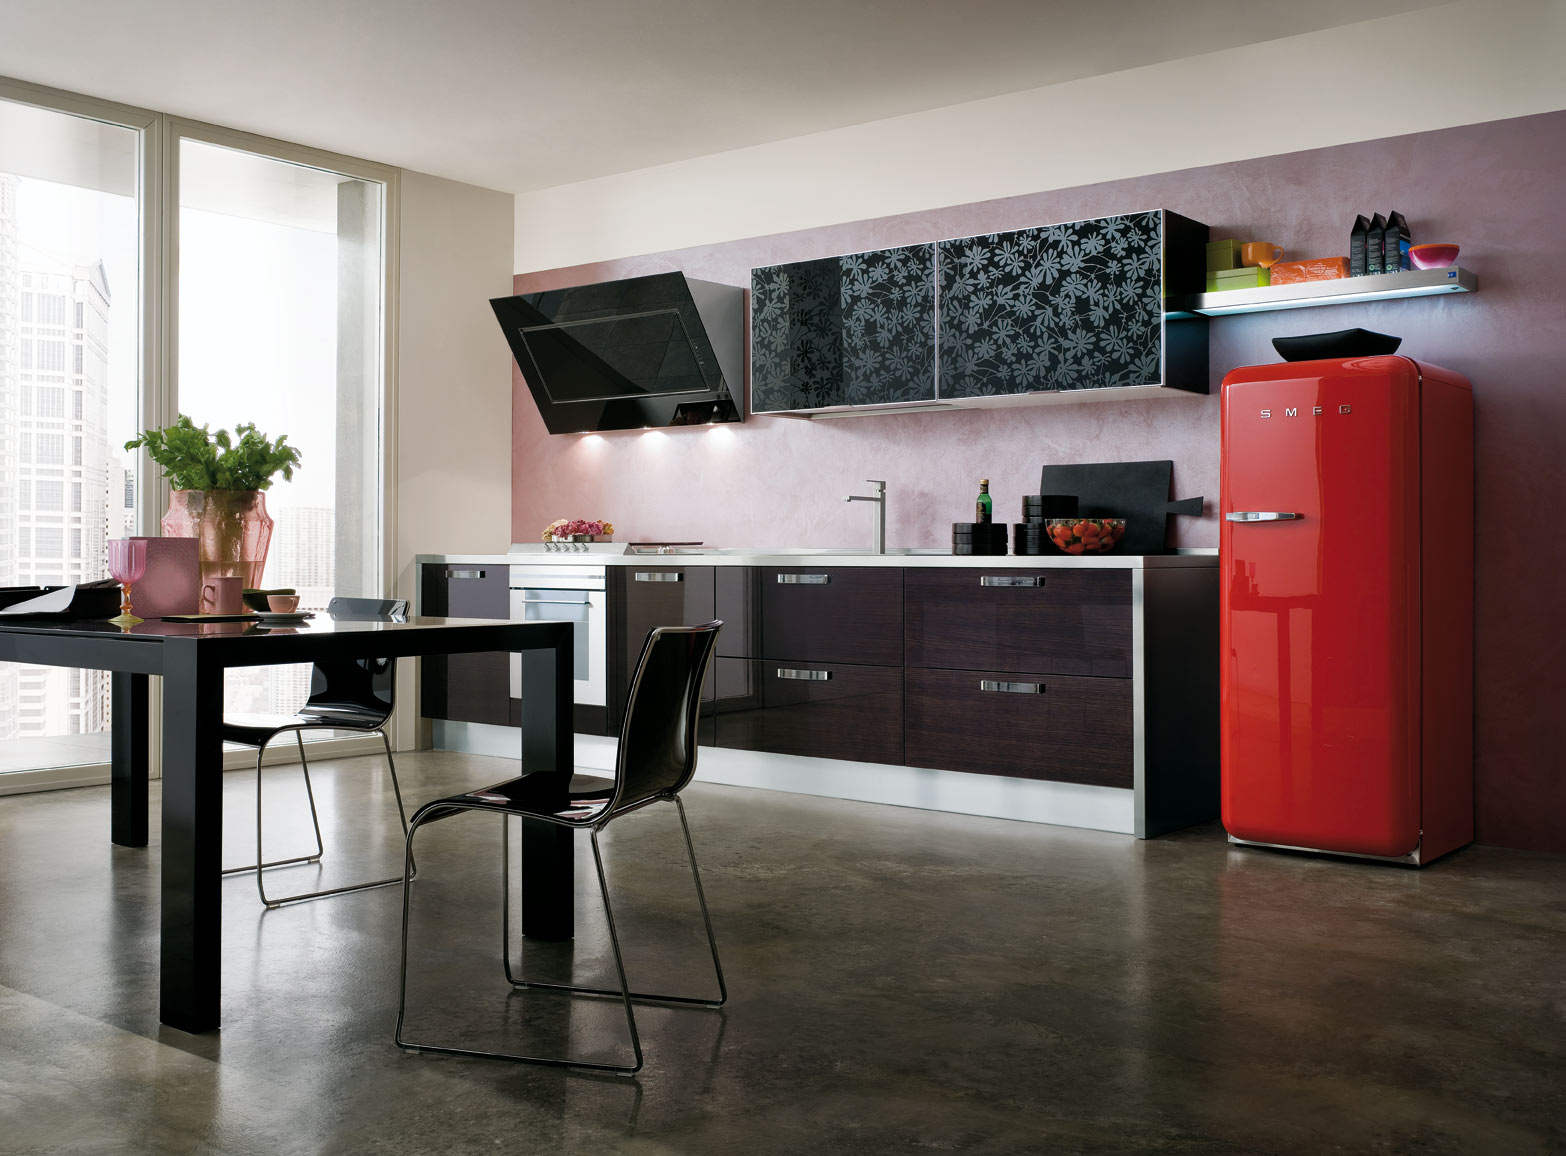 cucina zenith con ante in vetro disegni floreali gicinque cucine. Black Bedroom Furniture Sets. Home Design Ideas